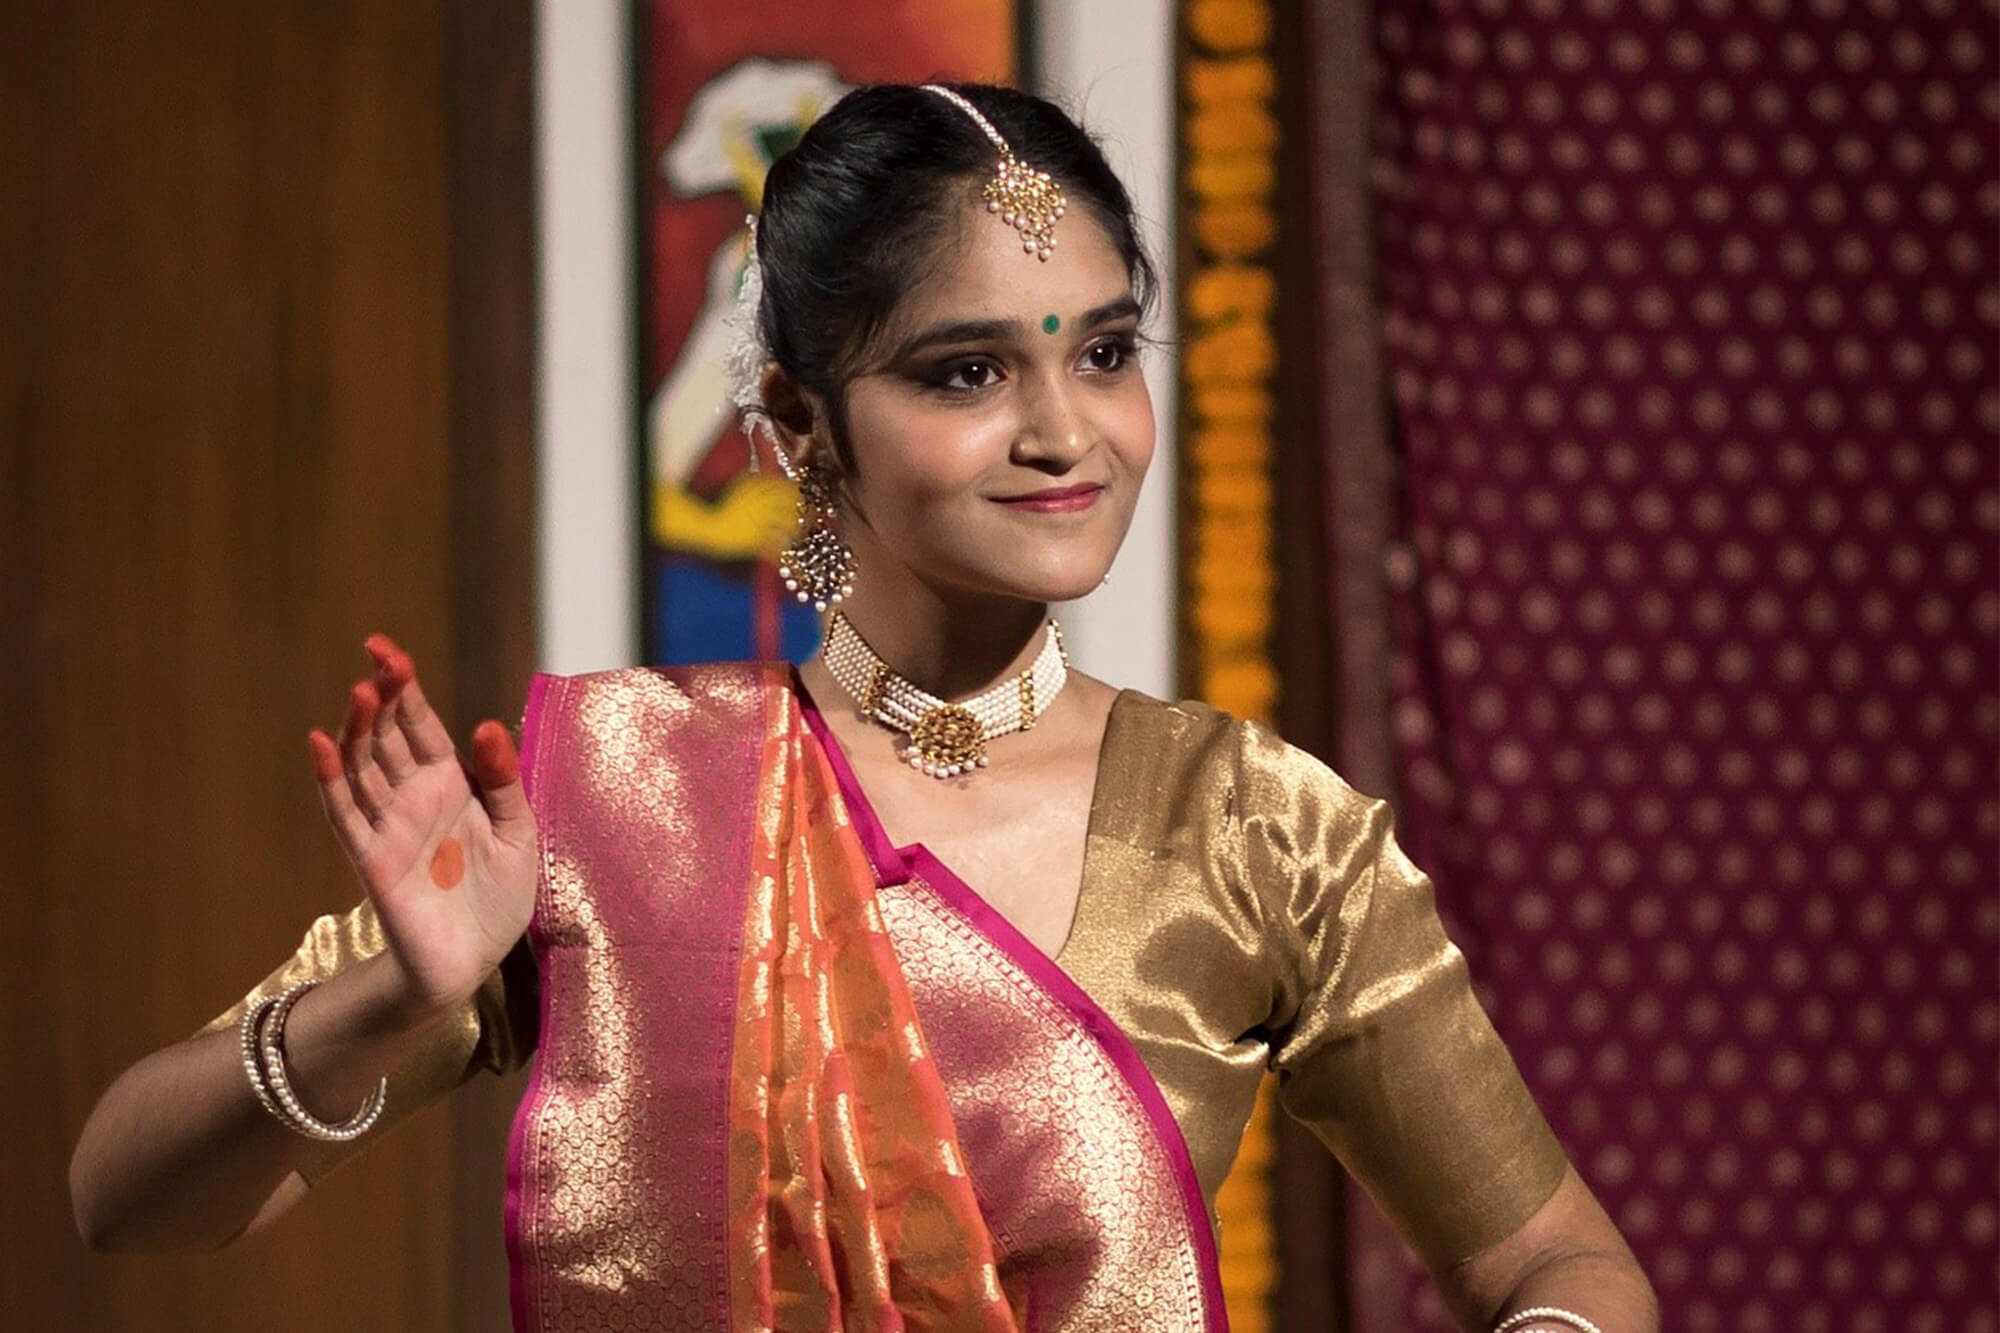 A student performing Indian Classical Dance